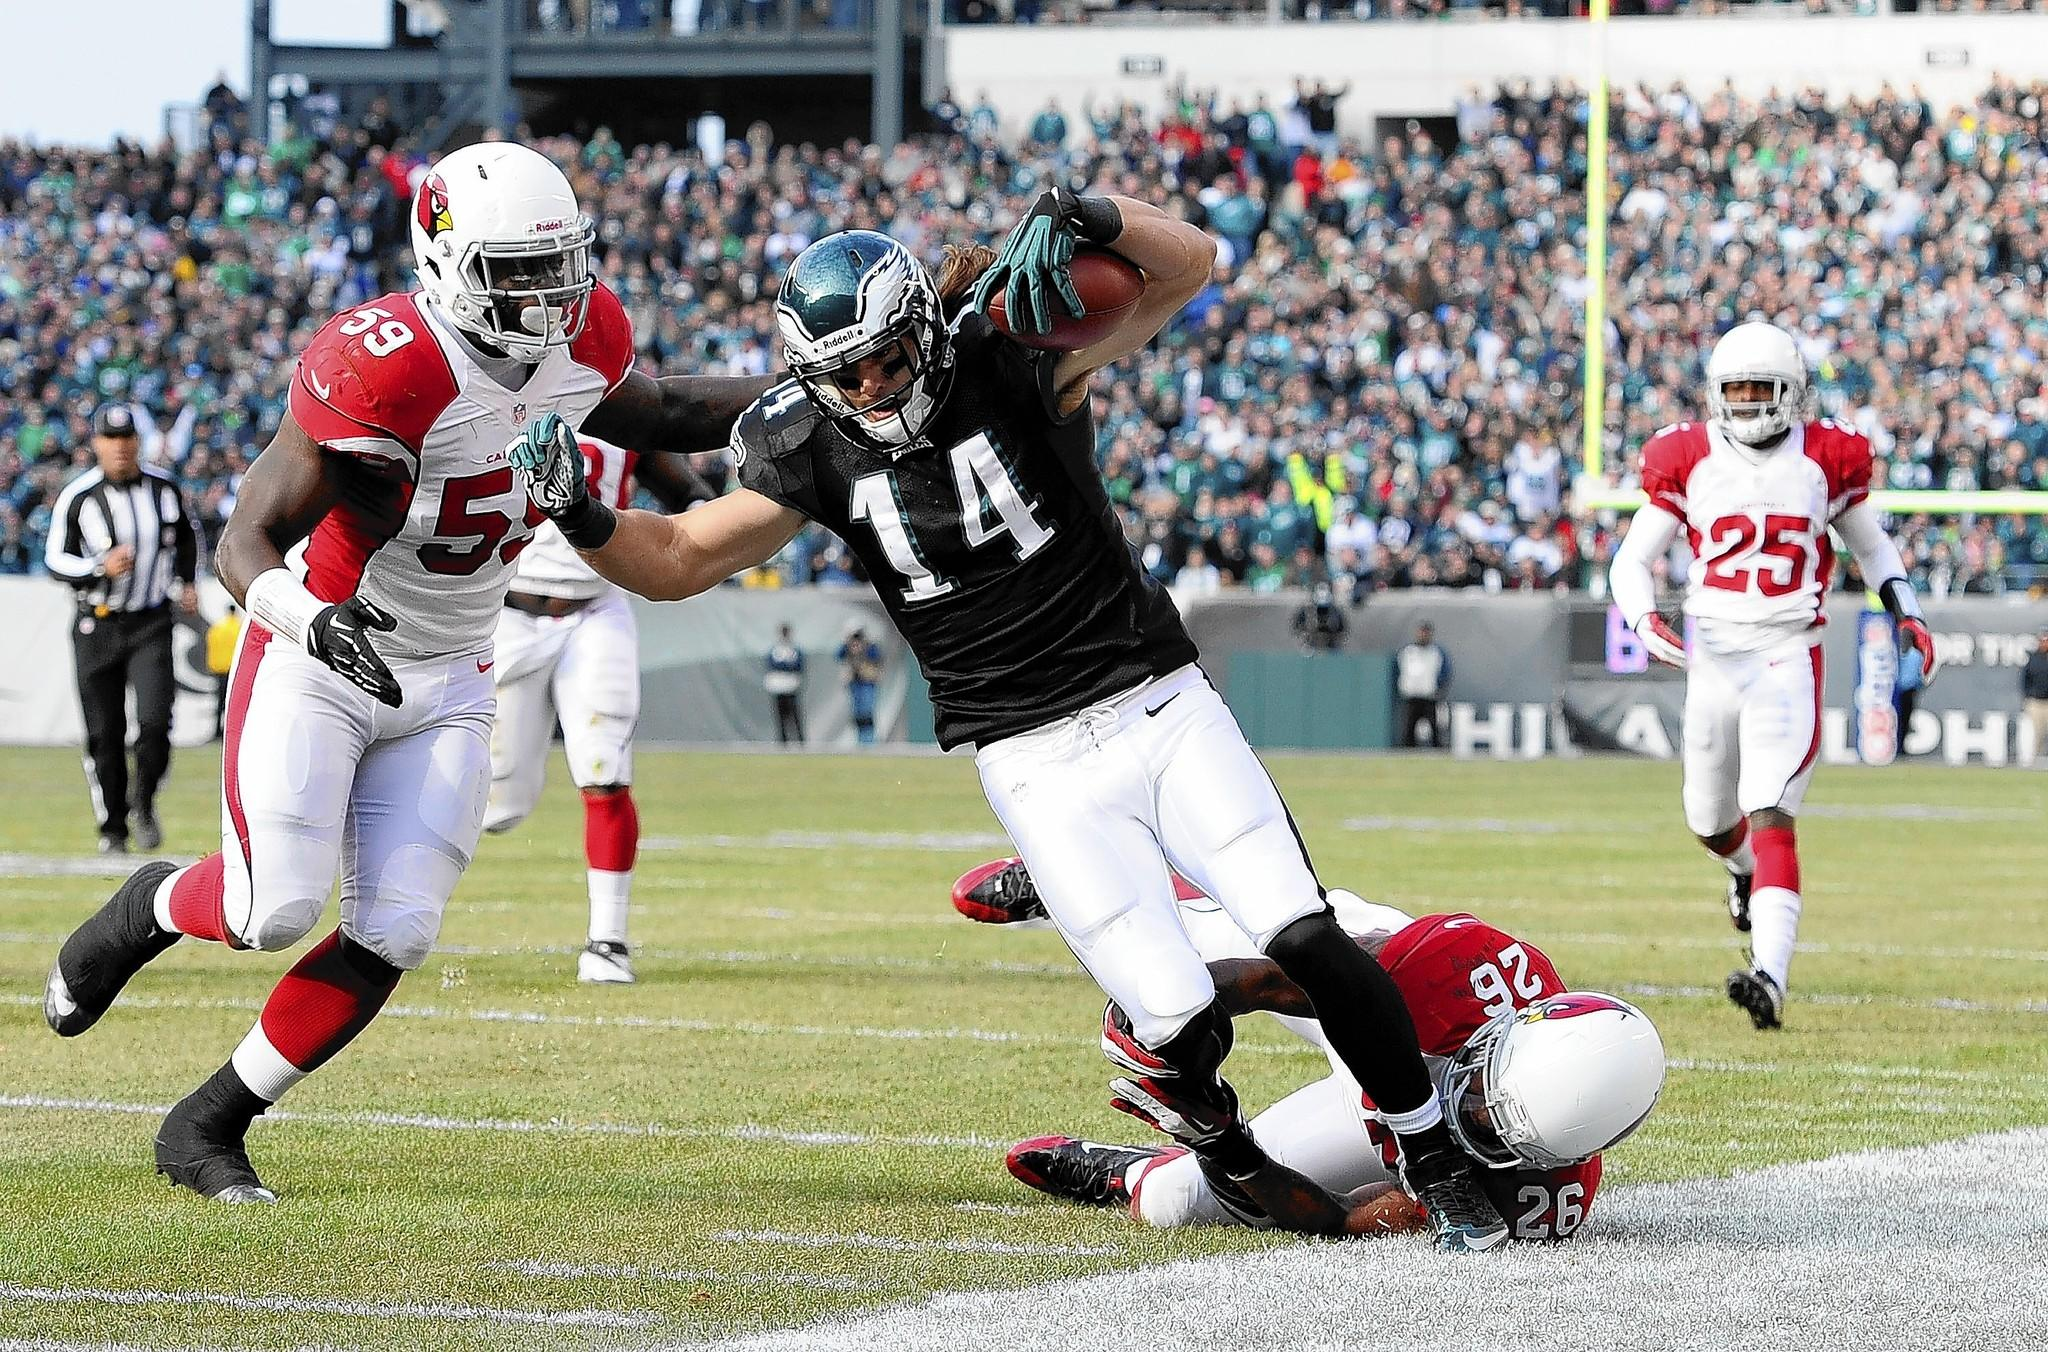 PHILADELPHIA, PA - DECEMBER 01: Riley Cooper #14 of the Philadelphia Eagles is tackled by Rashad Johnson #26 of the Arizona Cardinals and Marcus Benard #59 during the second quarter at Lincoln Financial Field on December 1, 2013 in Philadelphia, Pennsylvania. (